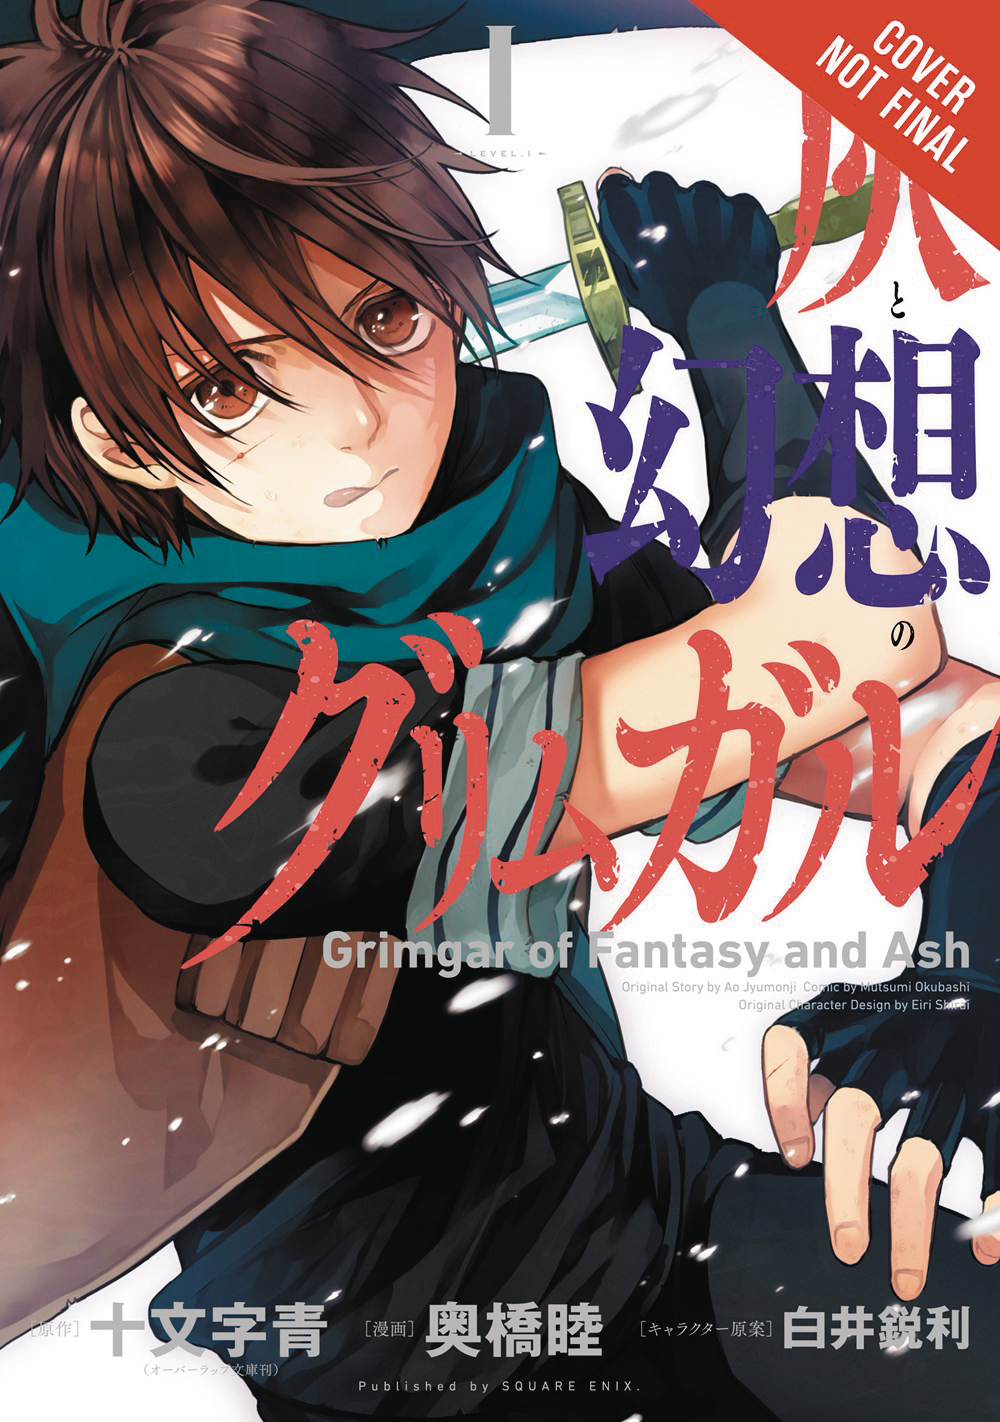 GRIMGAR OF FANTASY & ASH GN VOL 01